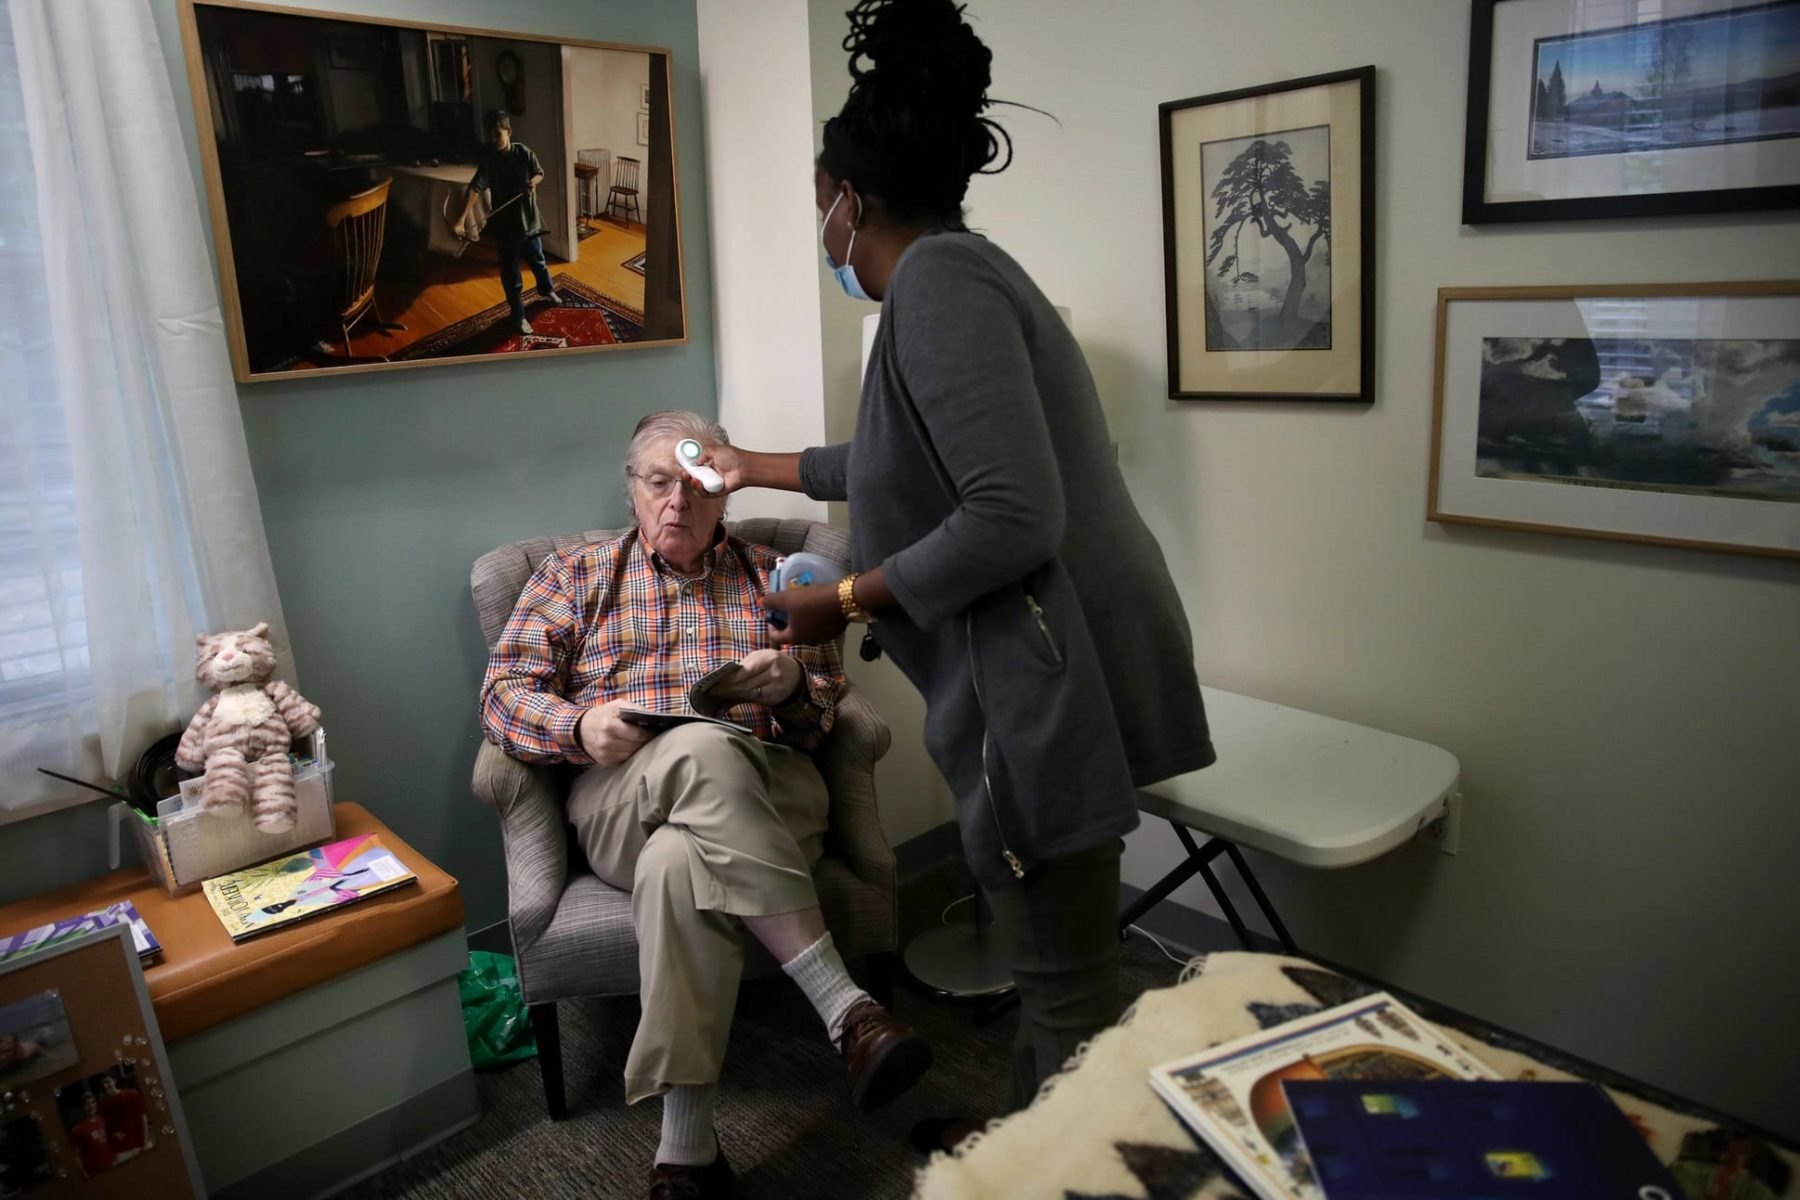 A resident of an assisted living facilty gets his temperature checked.